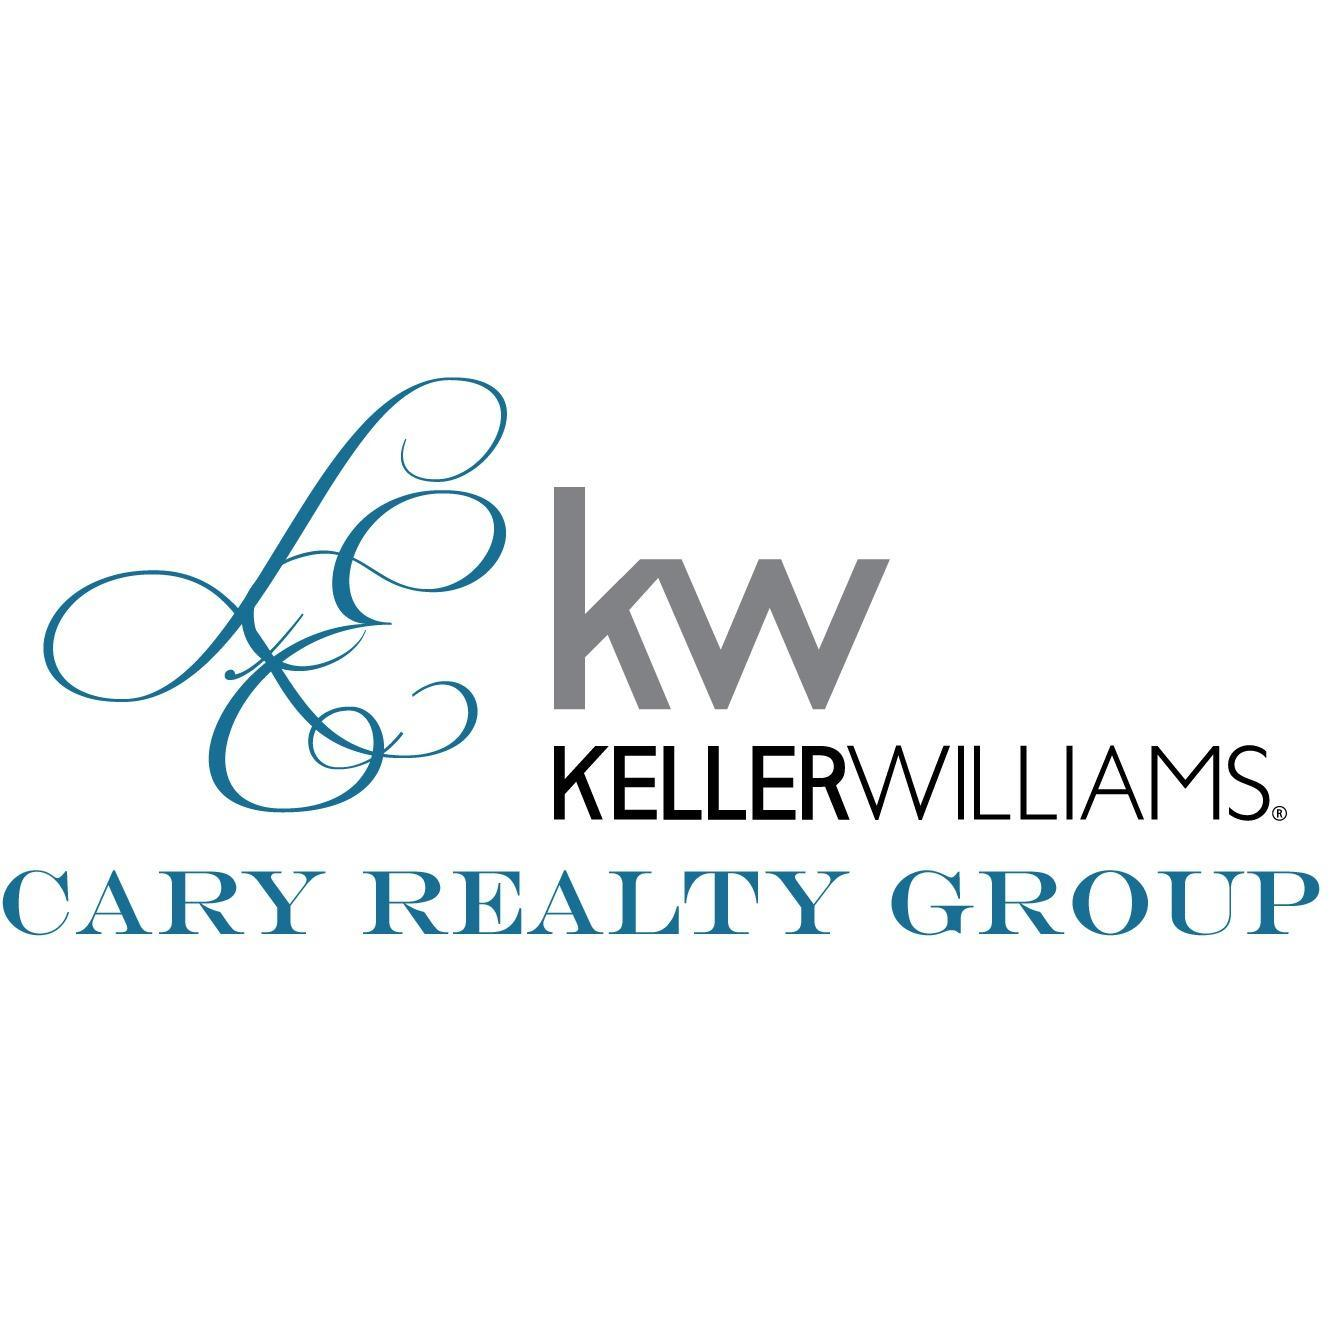 Cary Realty Group